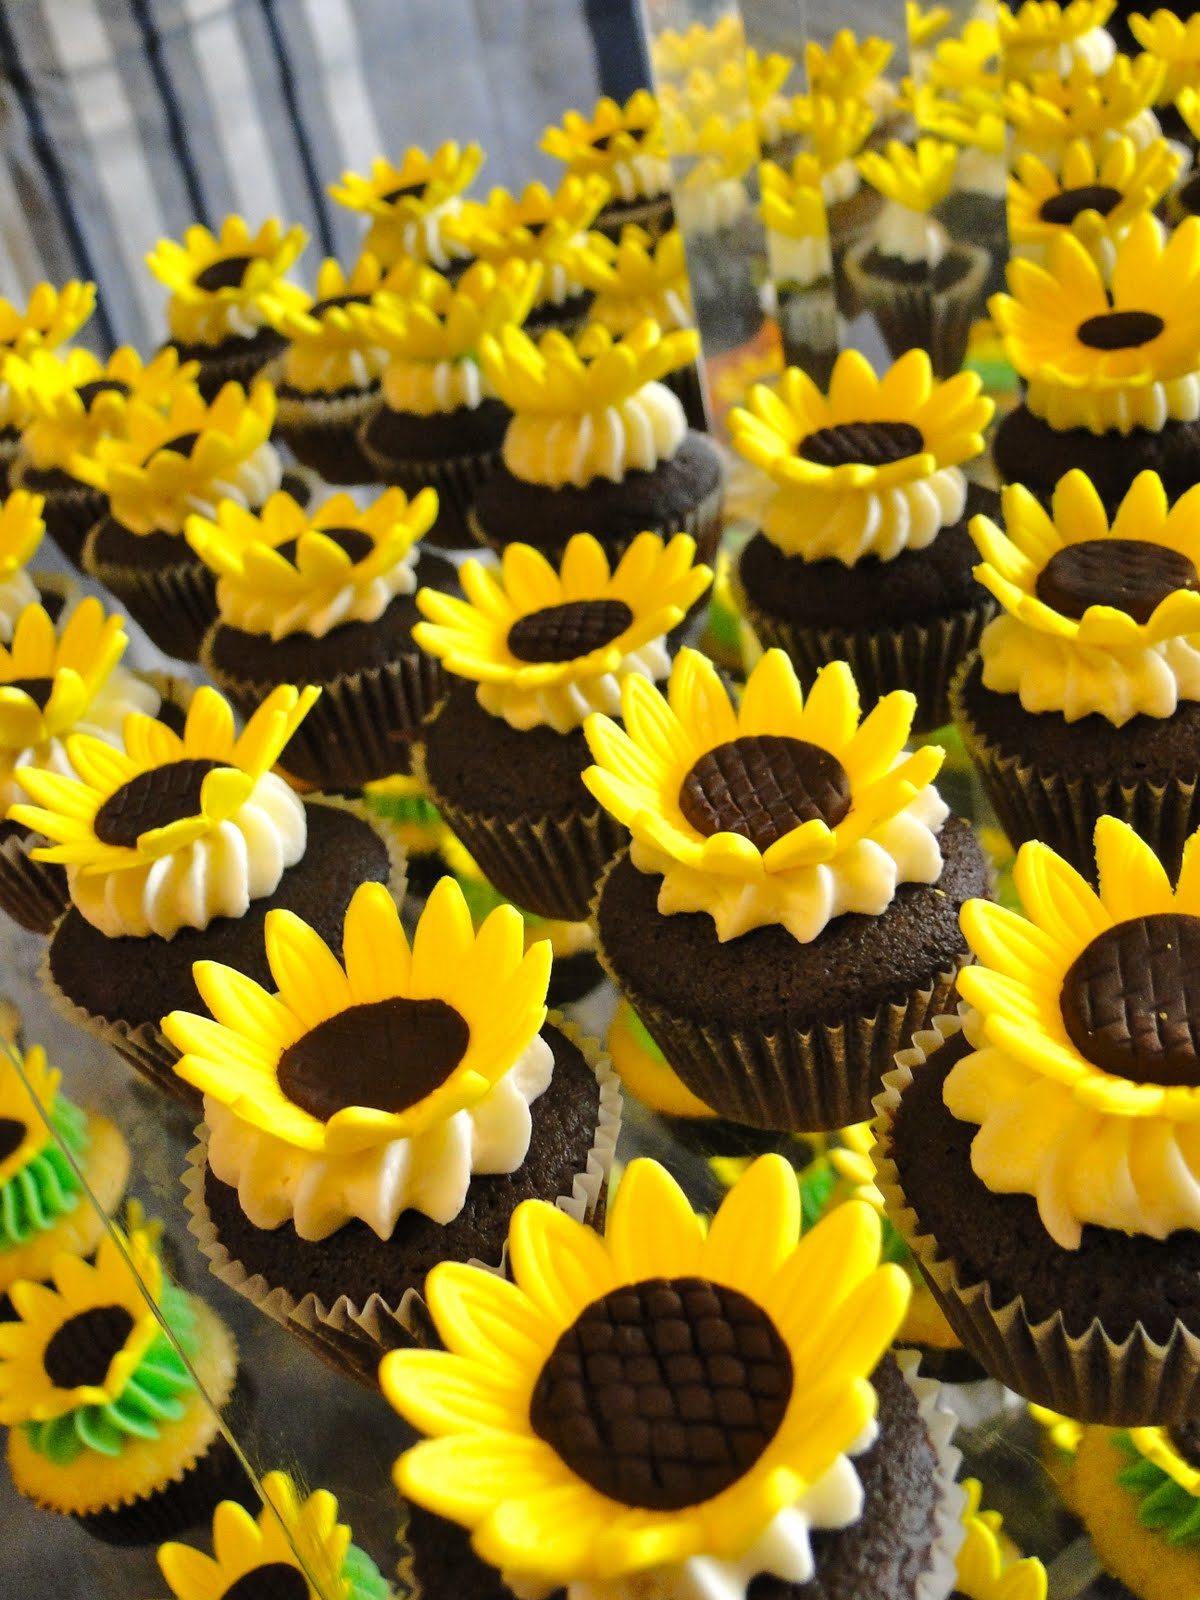 Beautiful Bridal Sunflower Wedding Cupcakes